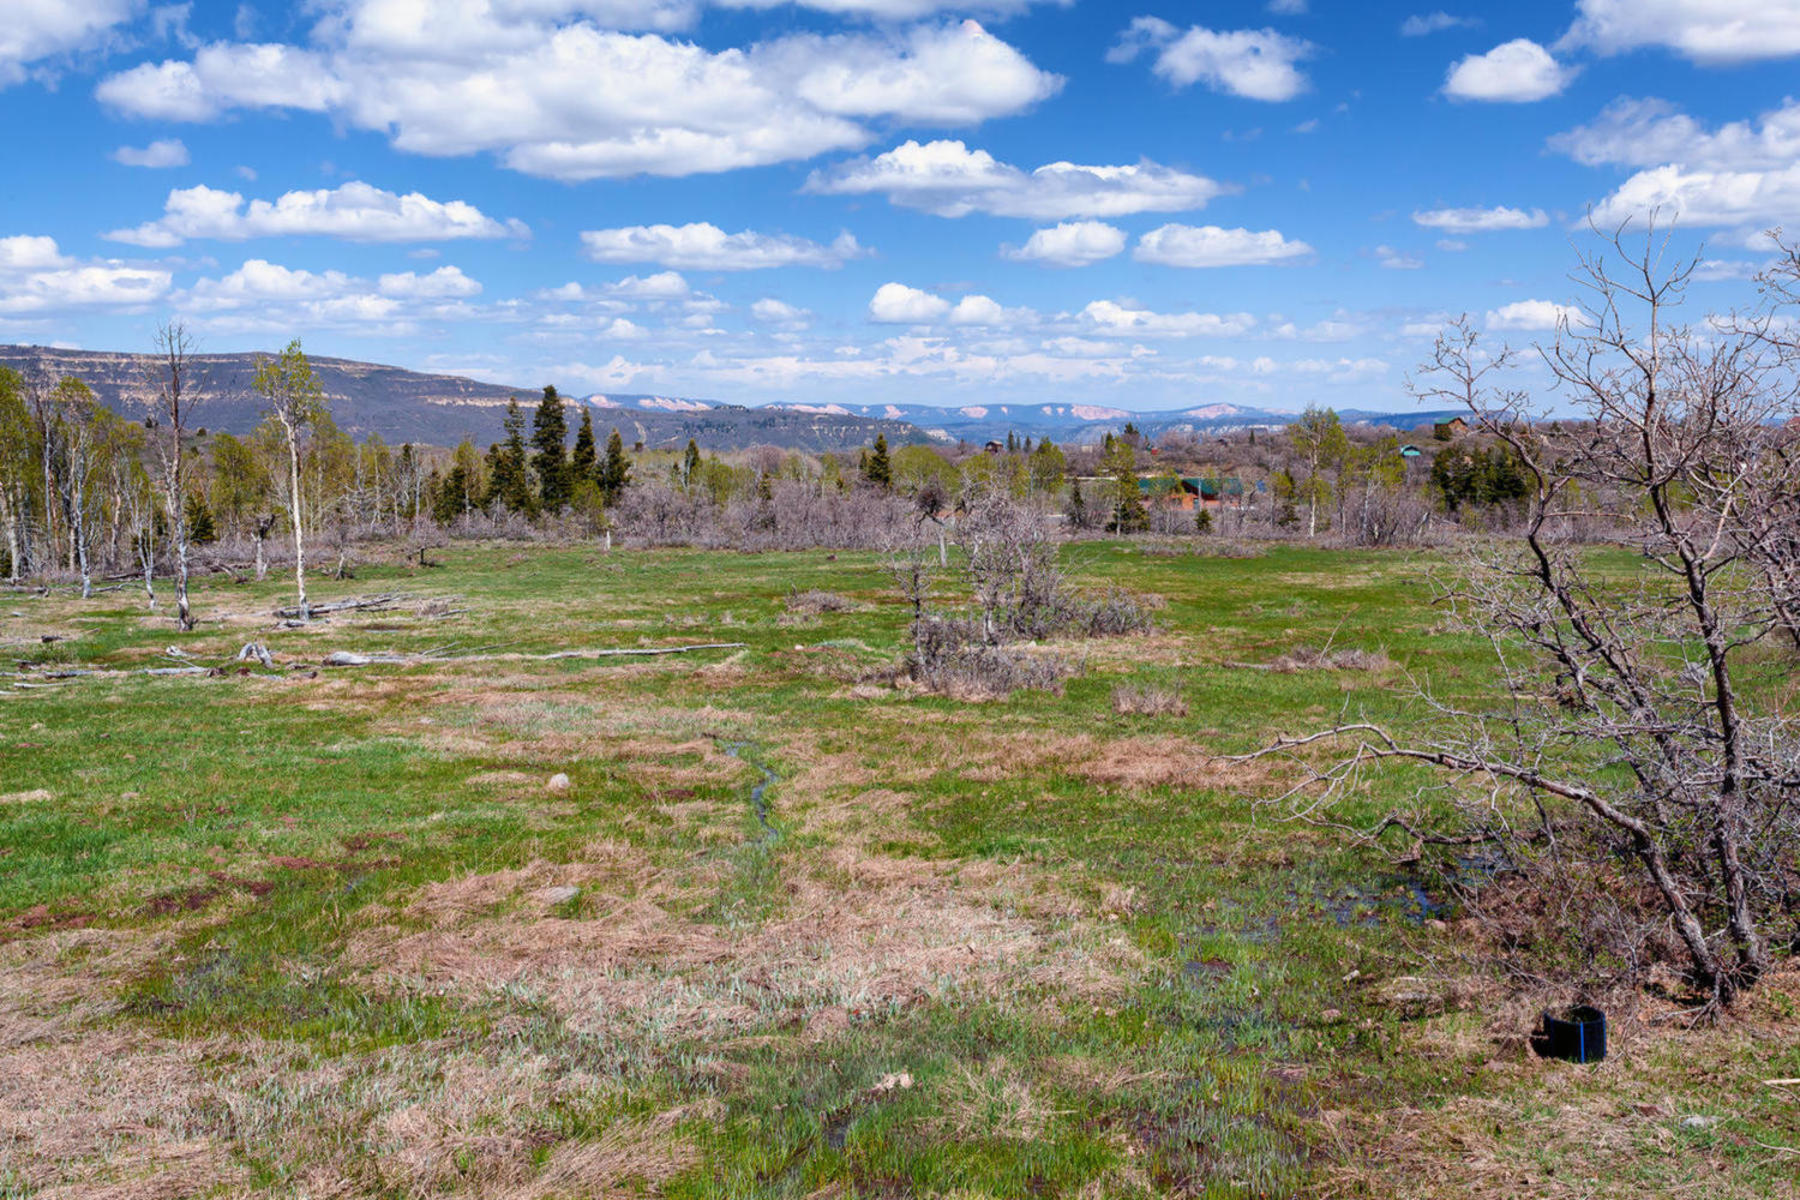 Land for Sale at Amazing Mountain View Lot in Whispering Pines Whispering Pines, #Lot 38, Virgin, Utah 84779 United States